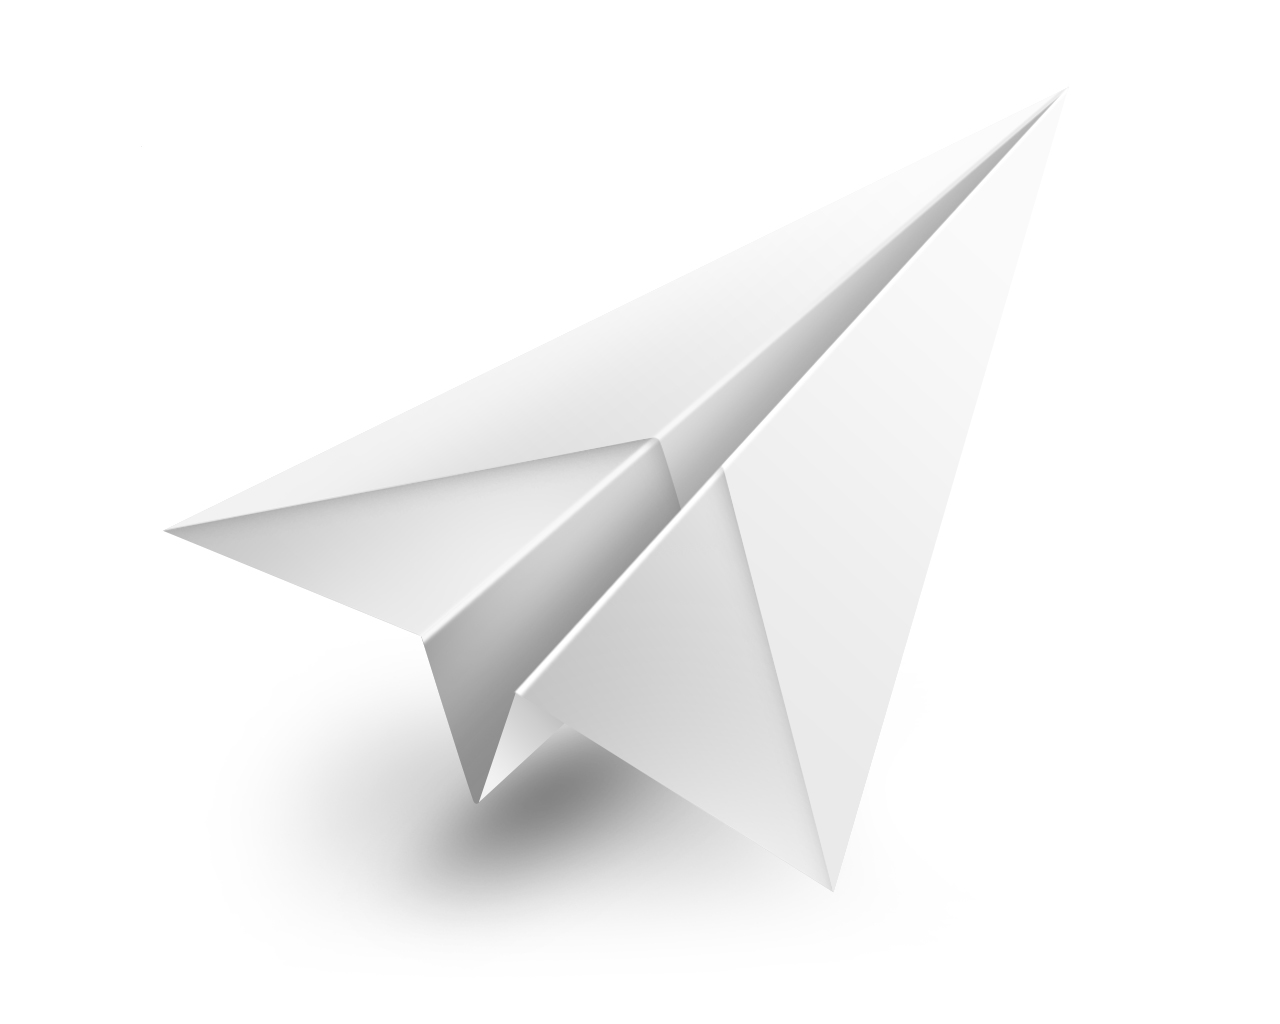 paper airplane background research